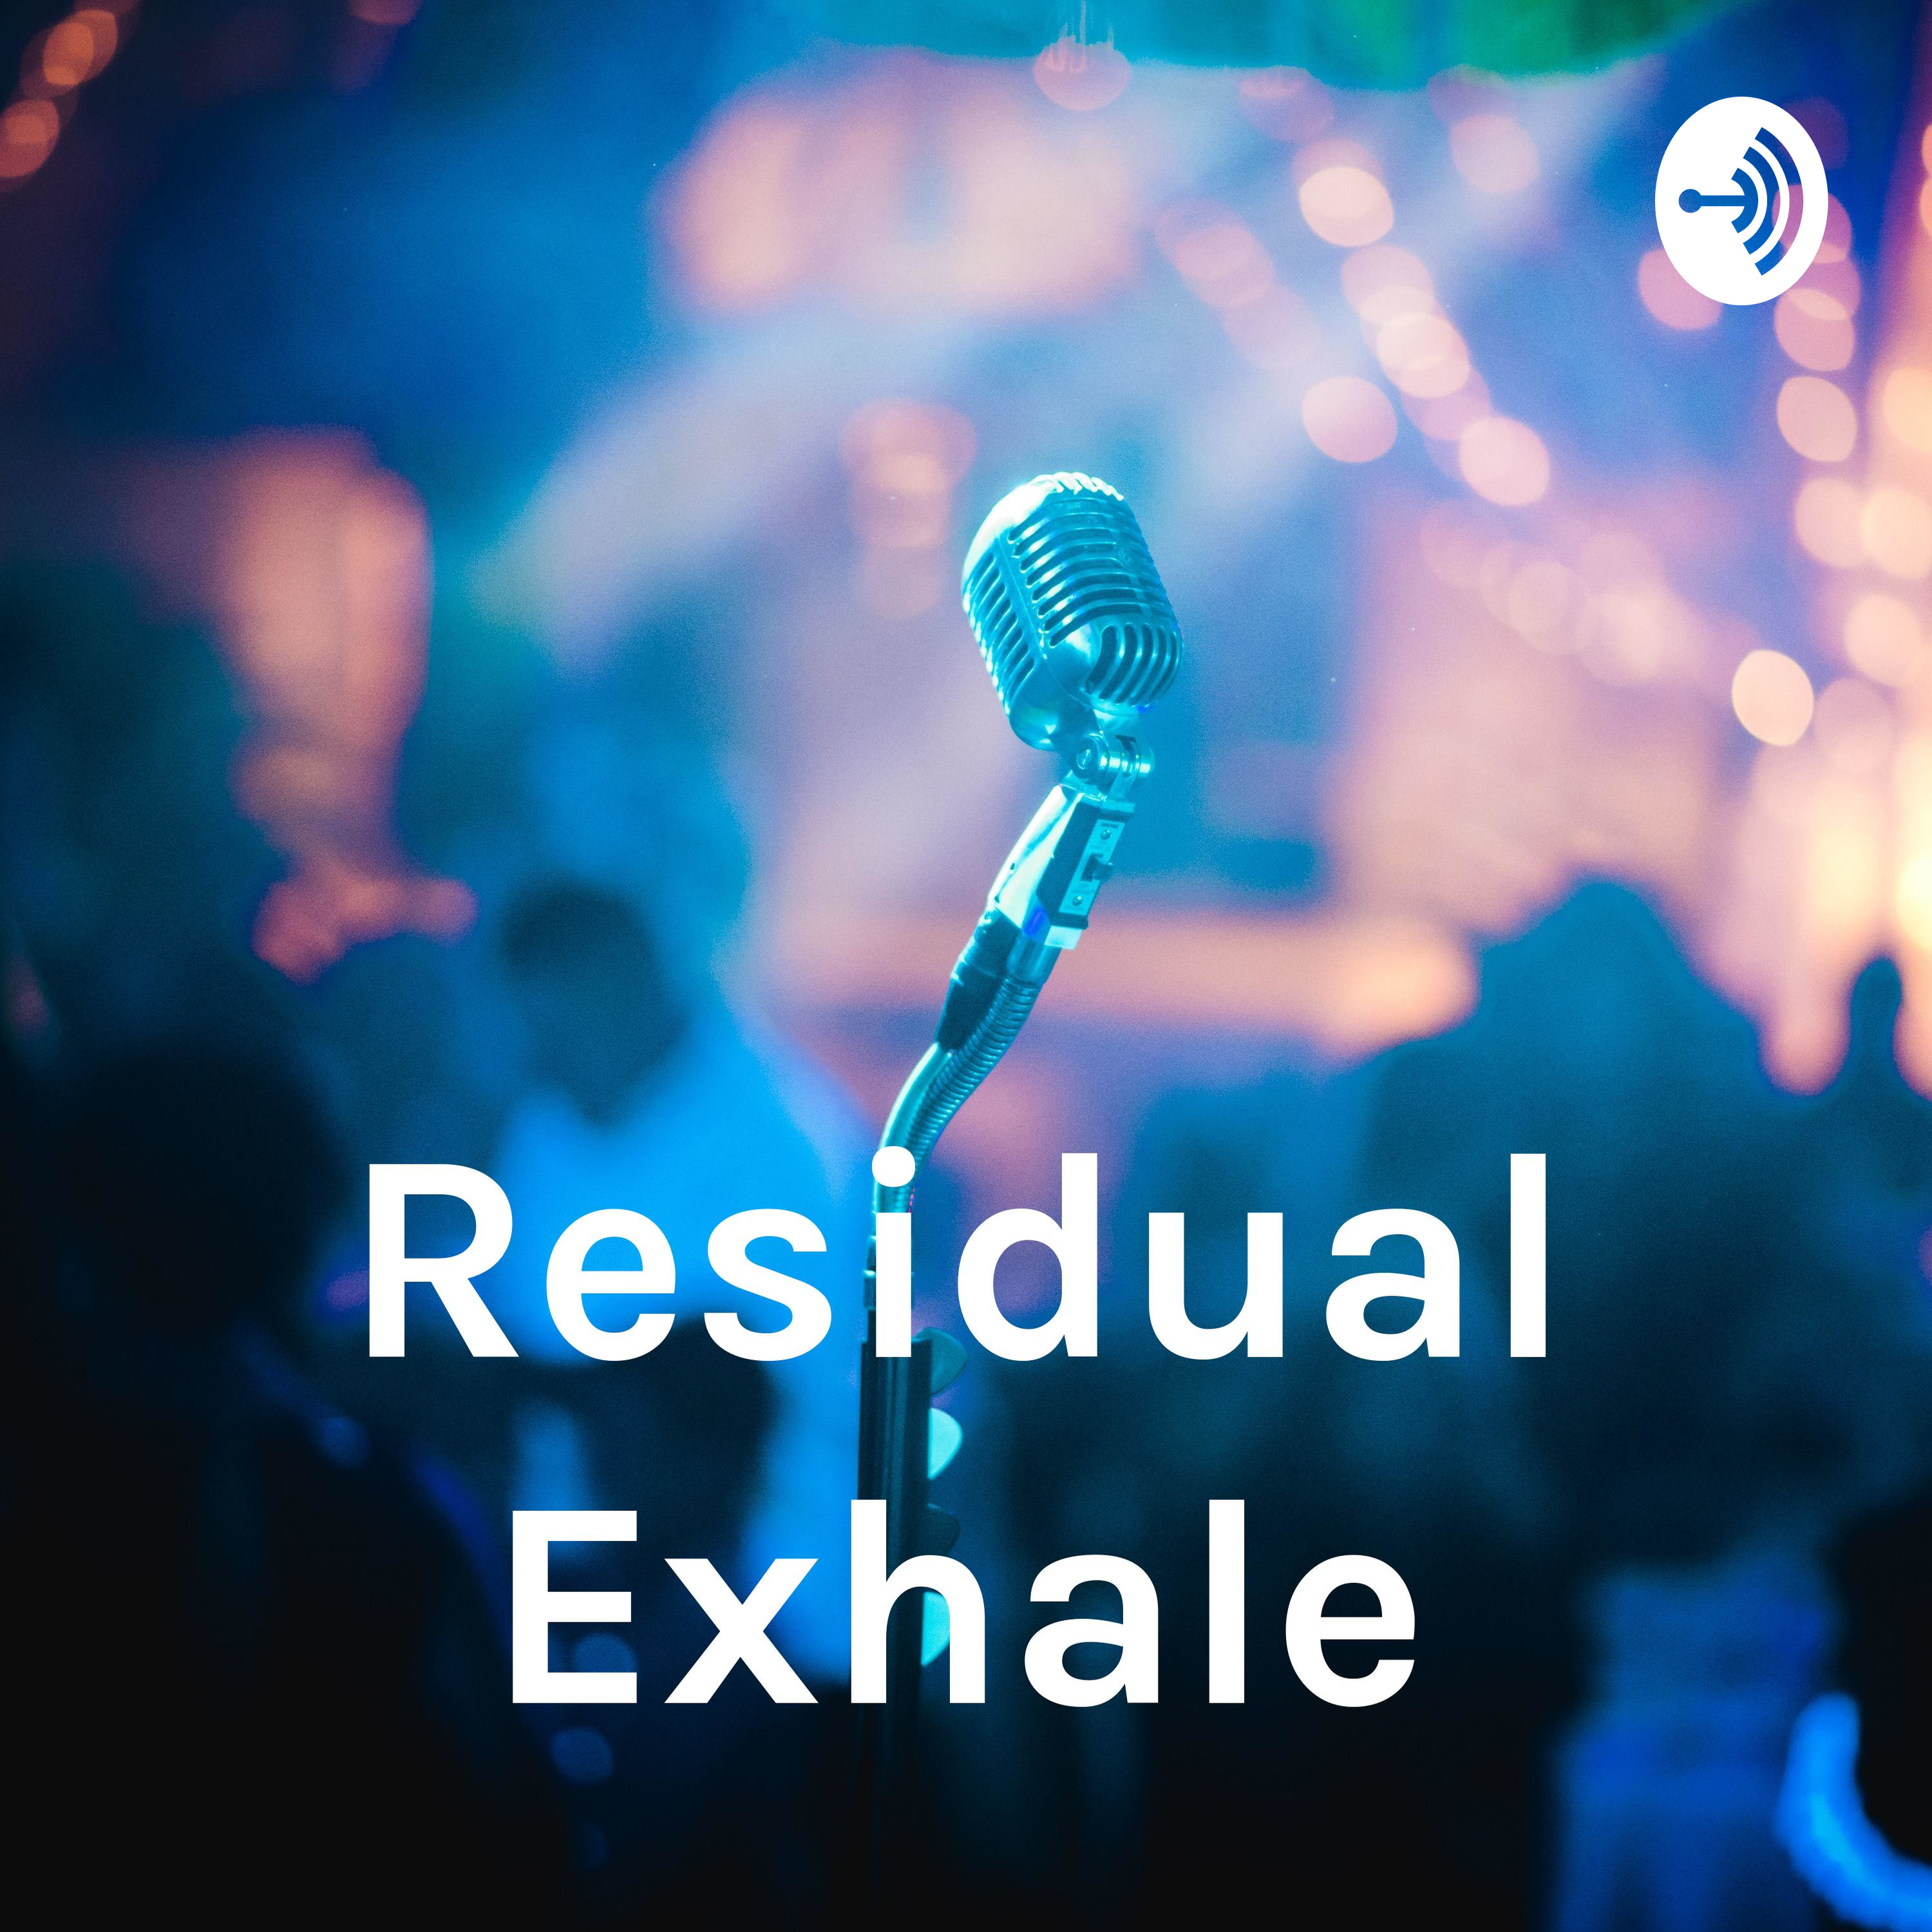 Residual Exhale